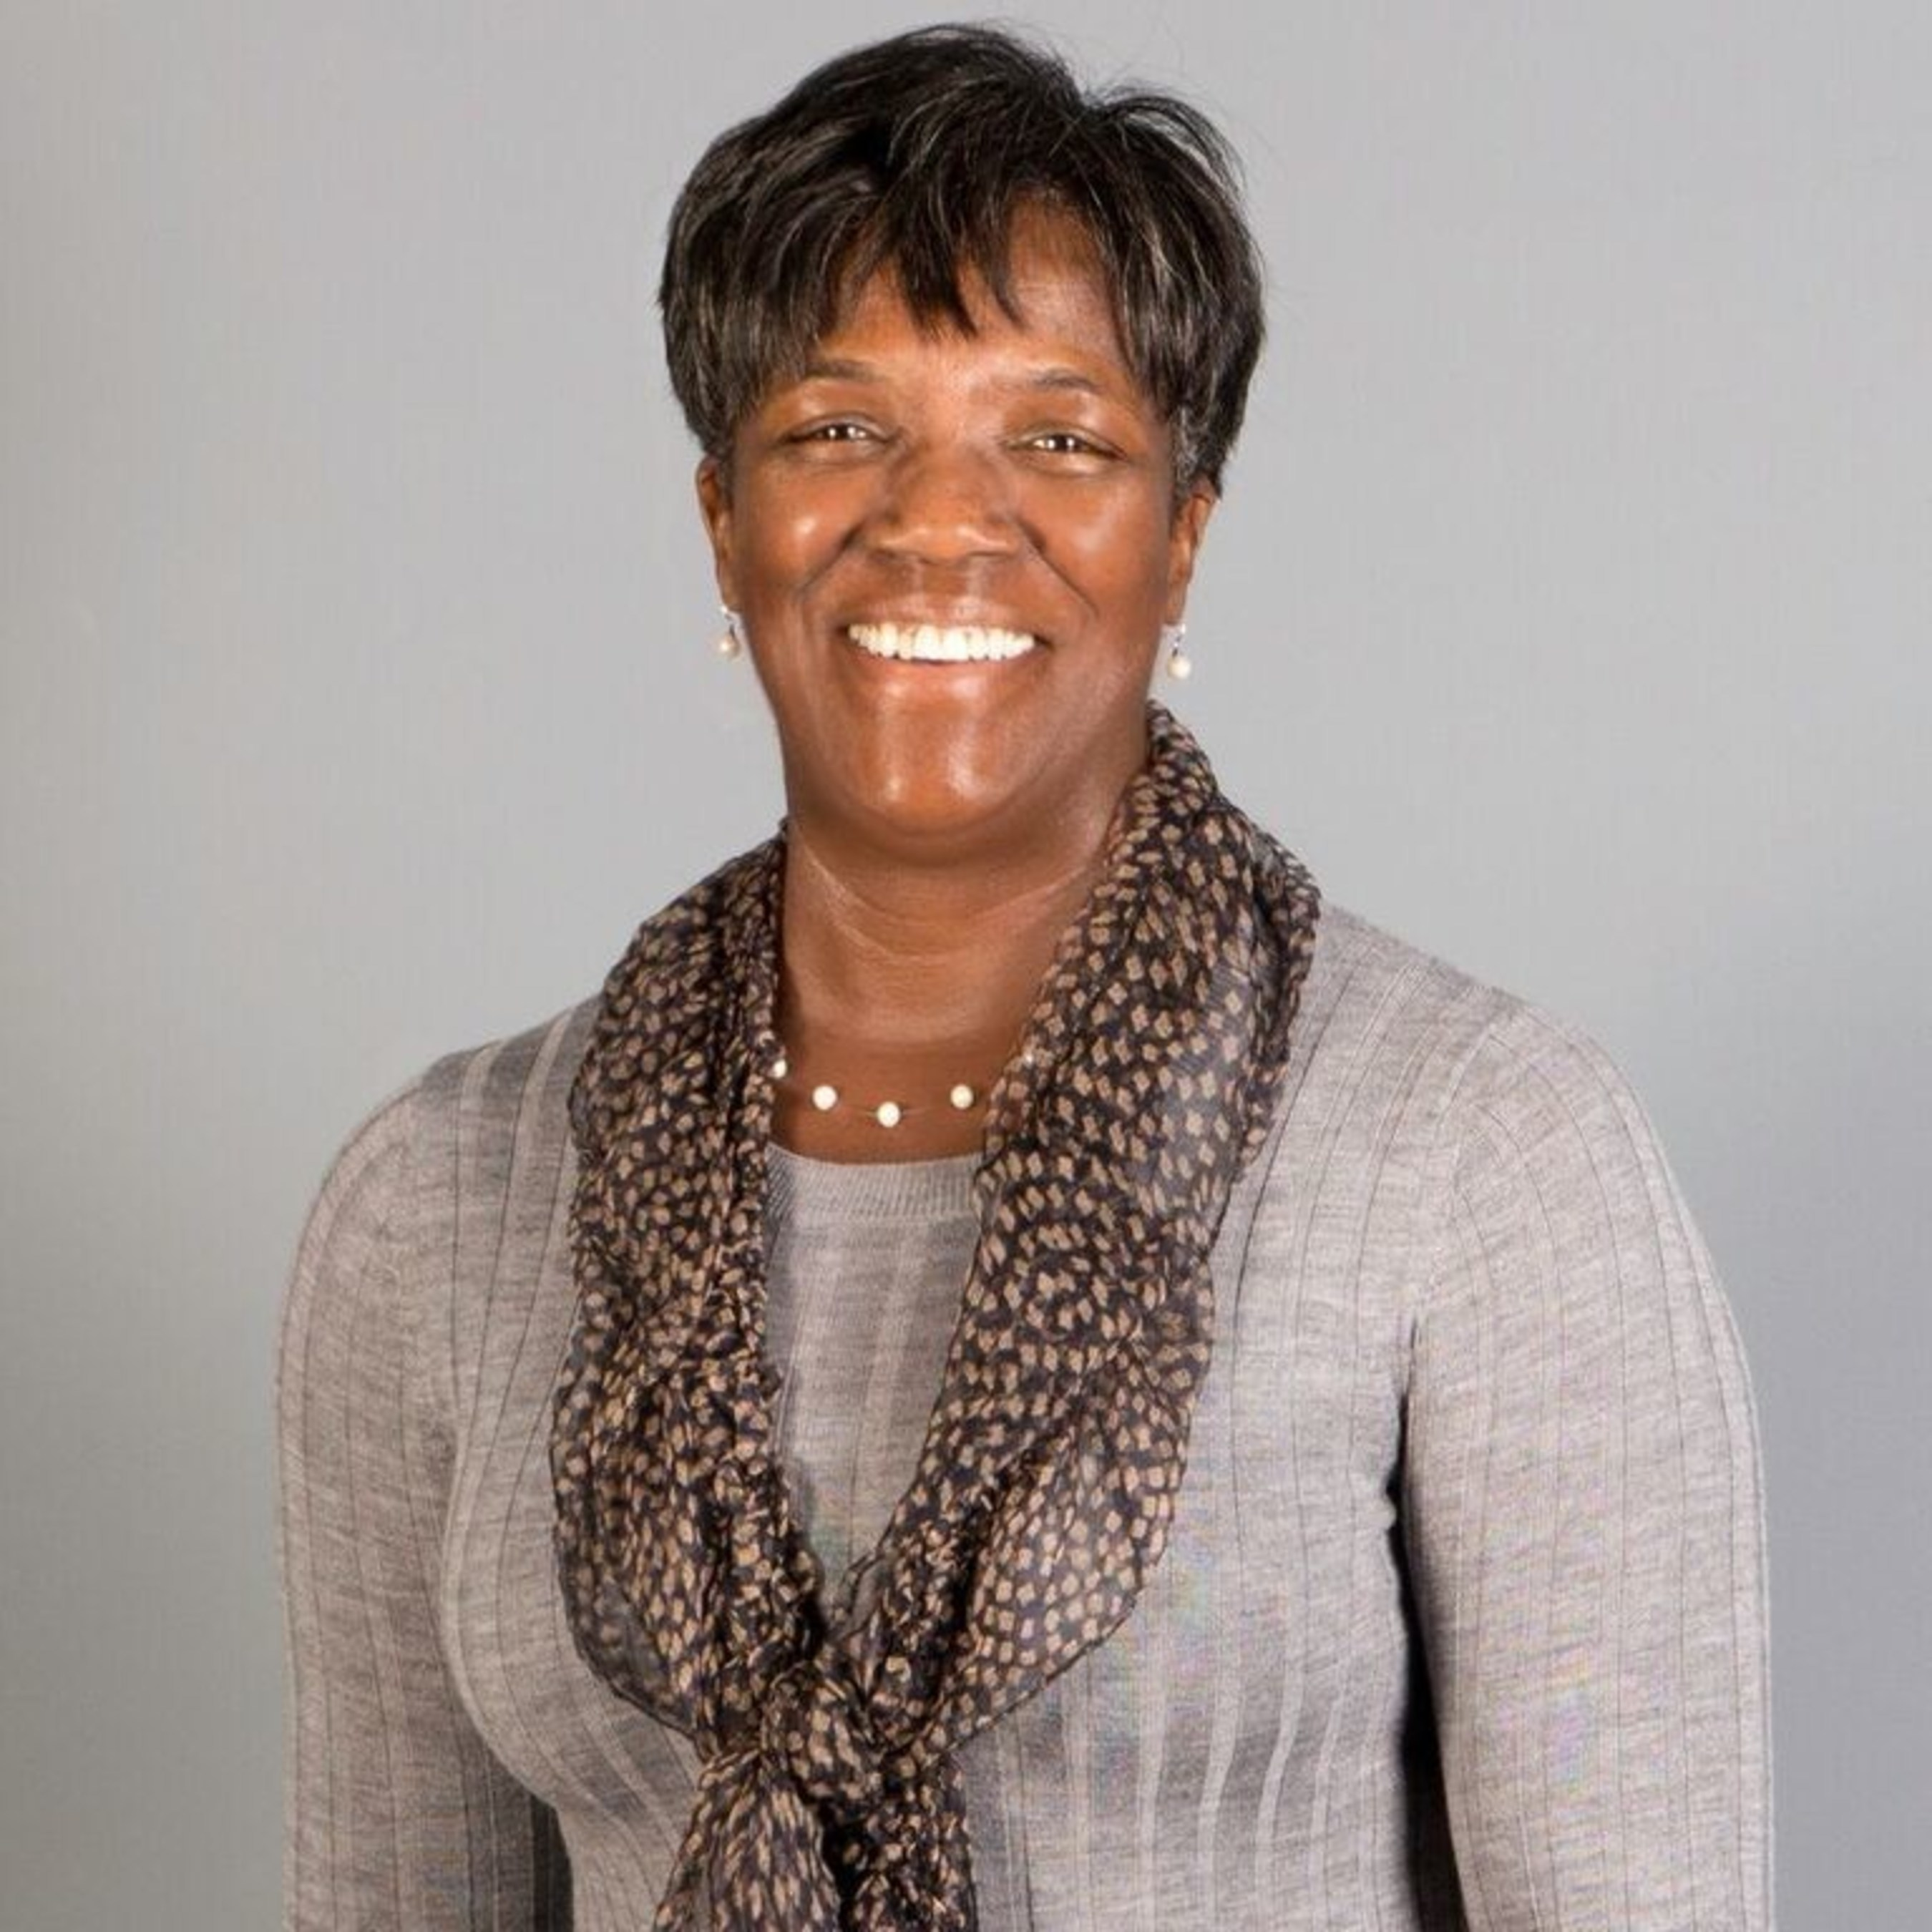 Jackie Gadsden, VP of Diversity and Inclusion for Comcast's Greater Boston Region.